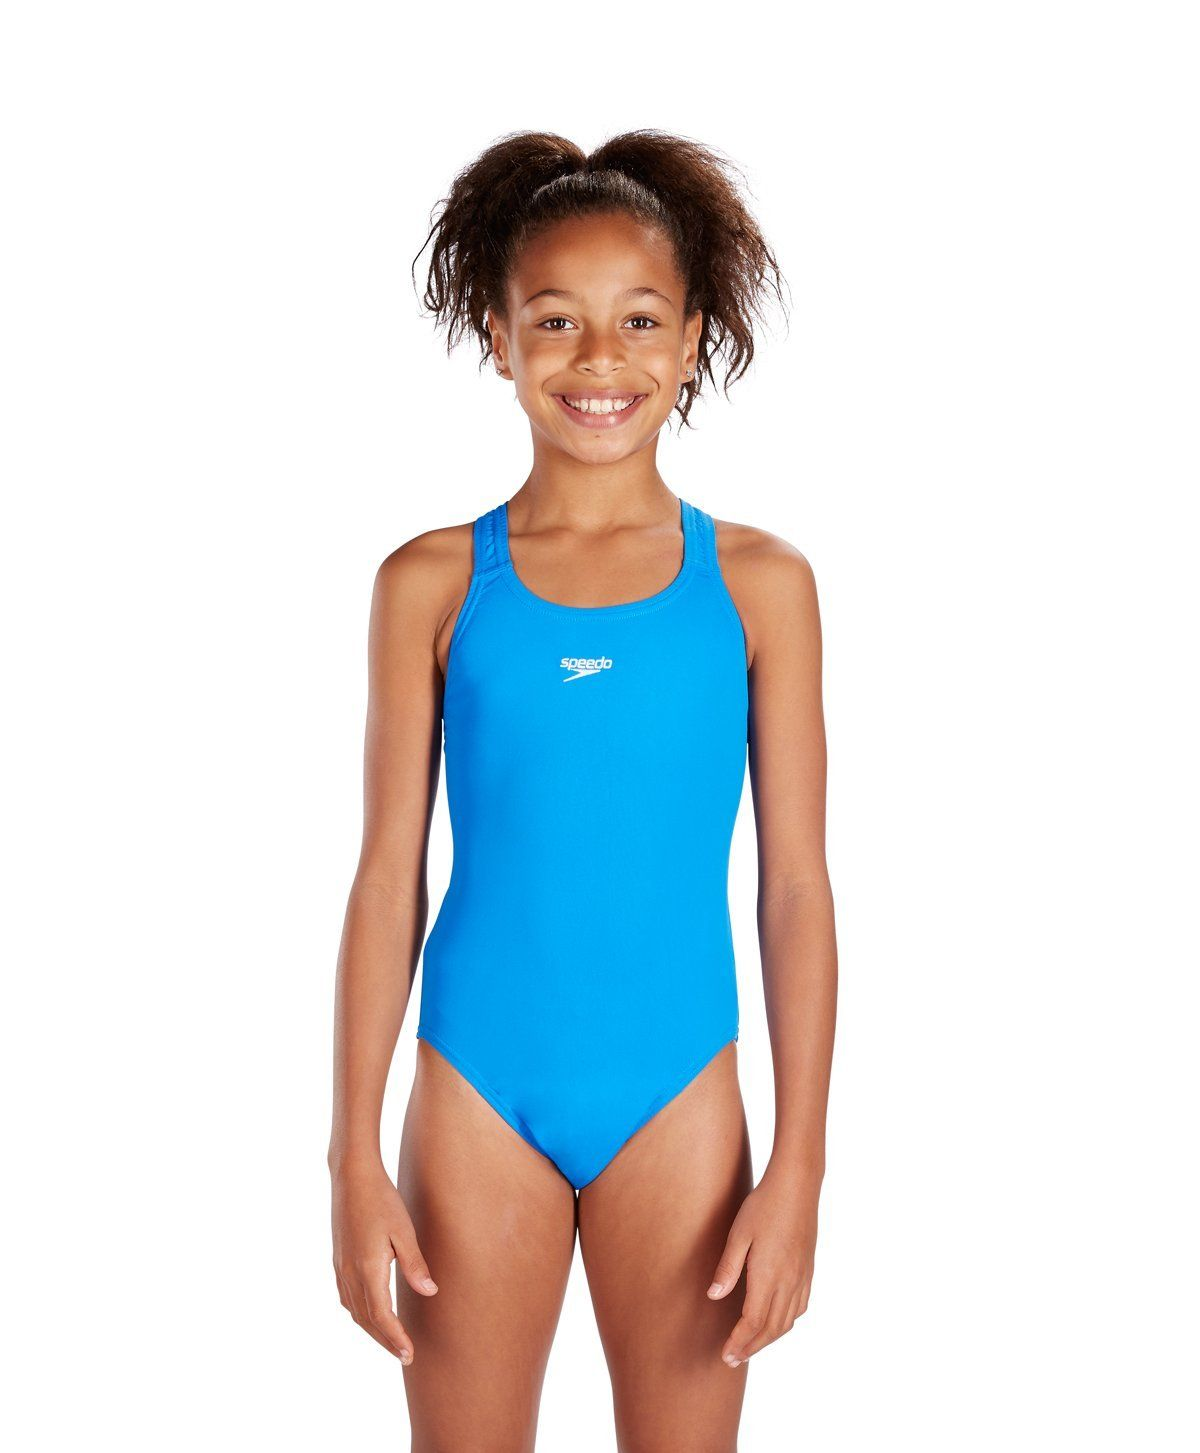 72d73b5666 Speedo Girls Endurance Plus Medalist Swimsuit in Black or Red: Amazon.ca:  Sports